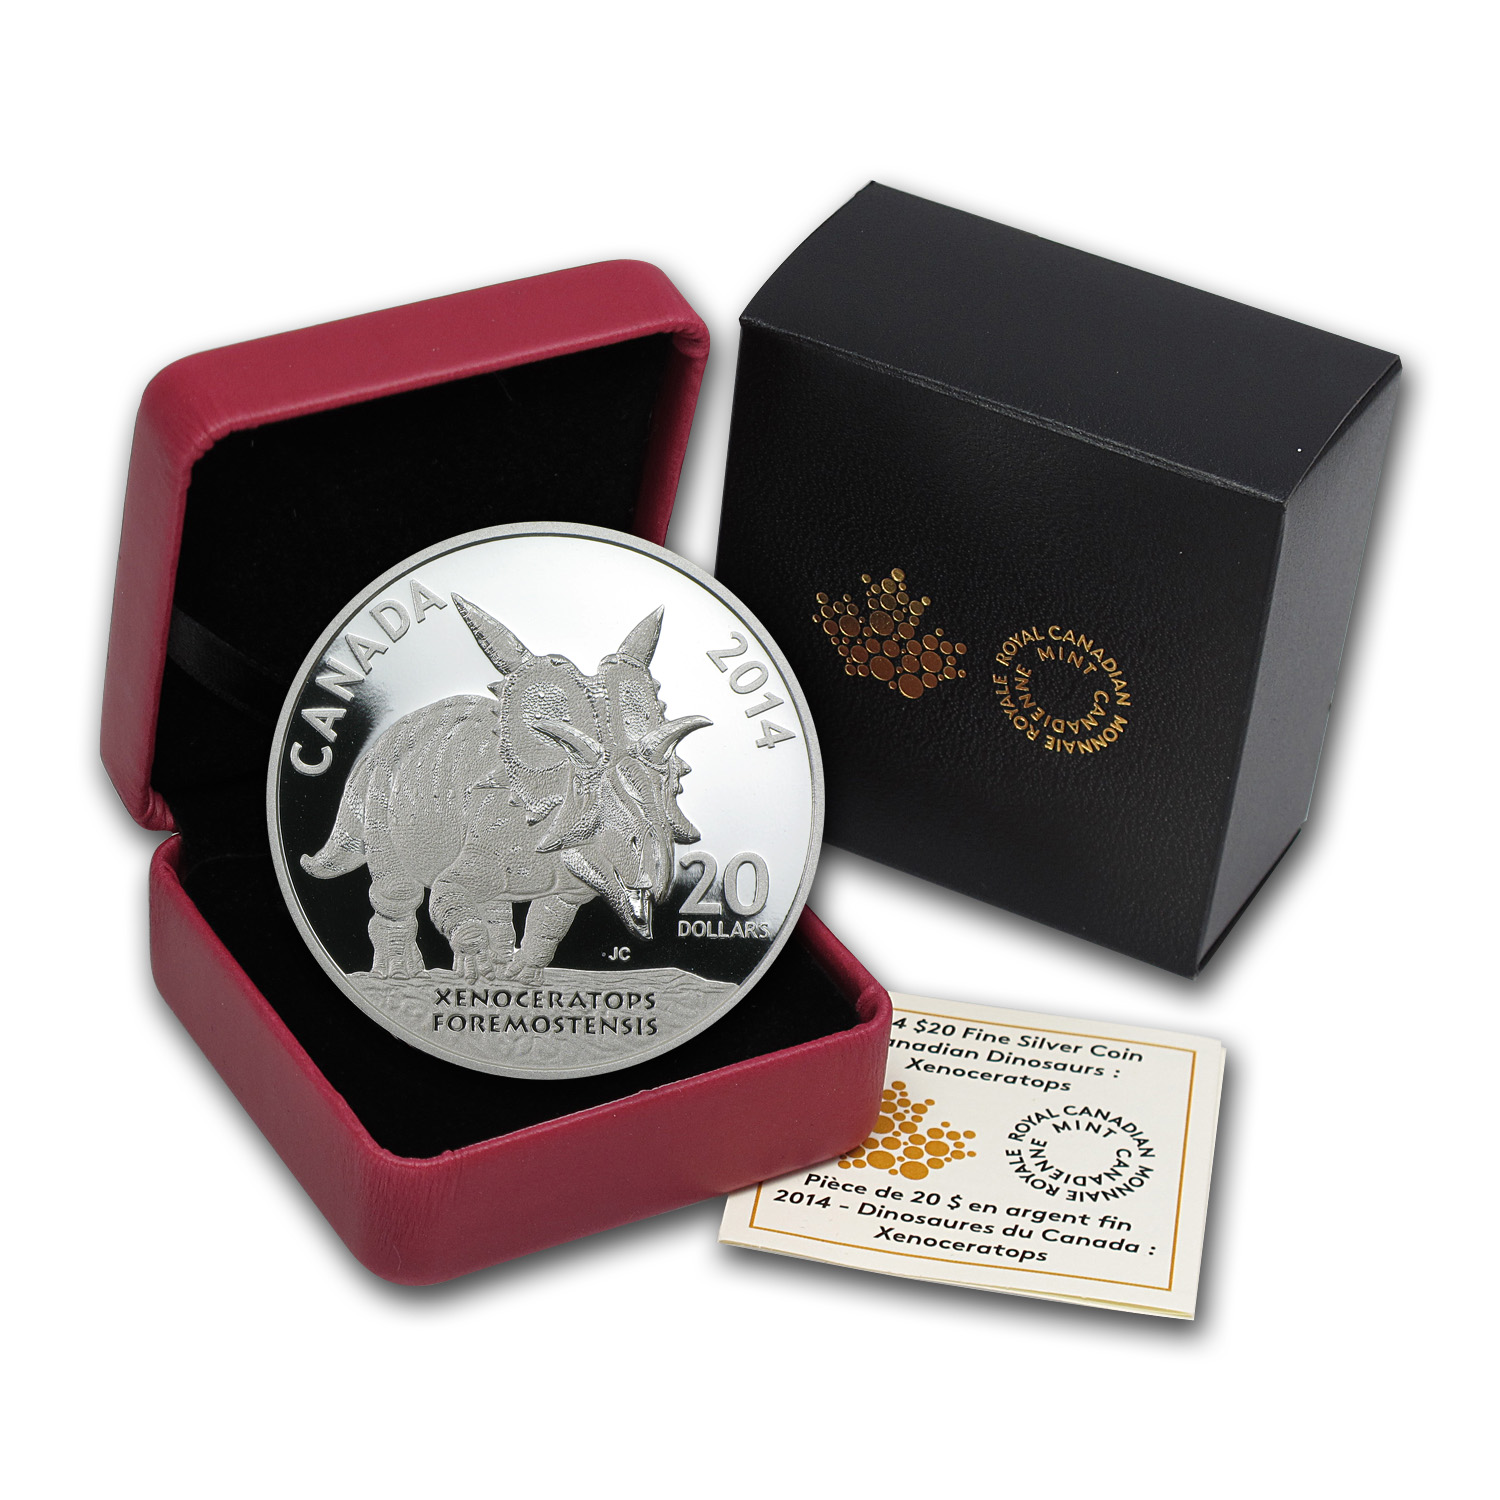 2014 1 oz Silver Dinosaurs of Canada Xenoceratops Foremostensis